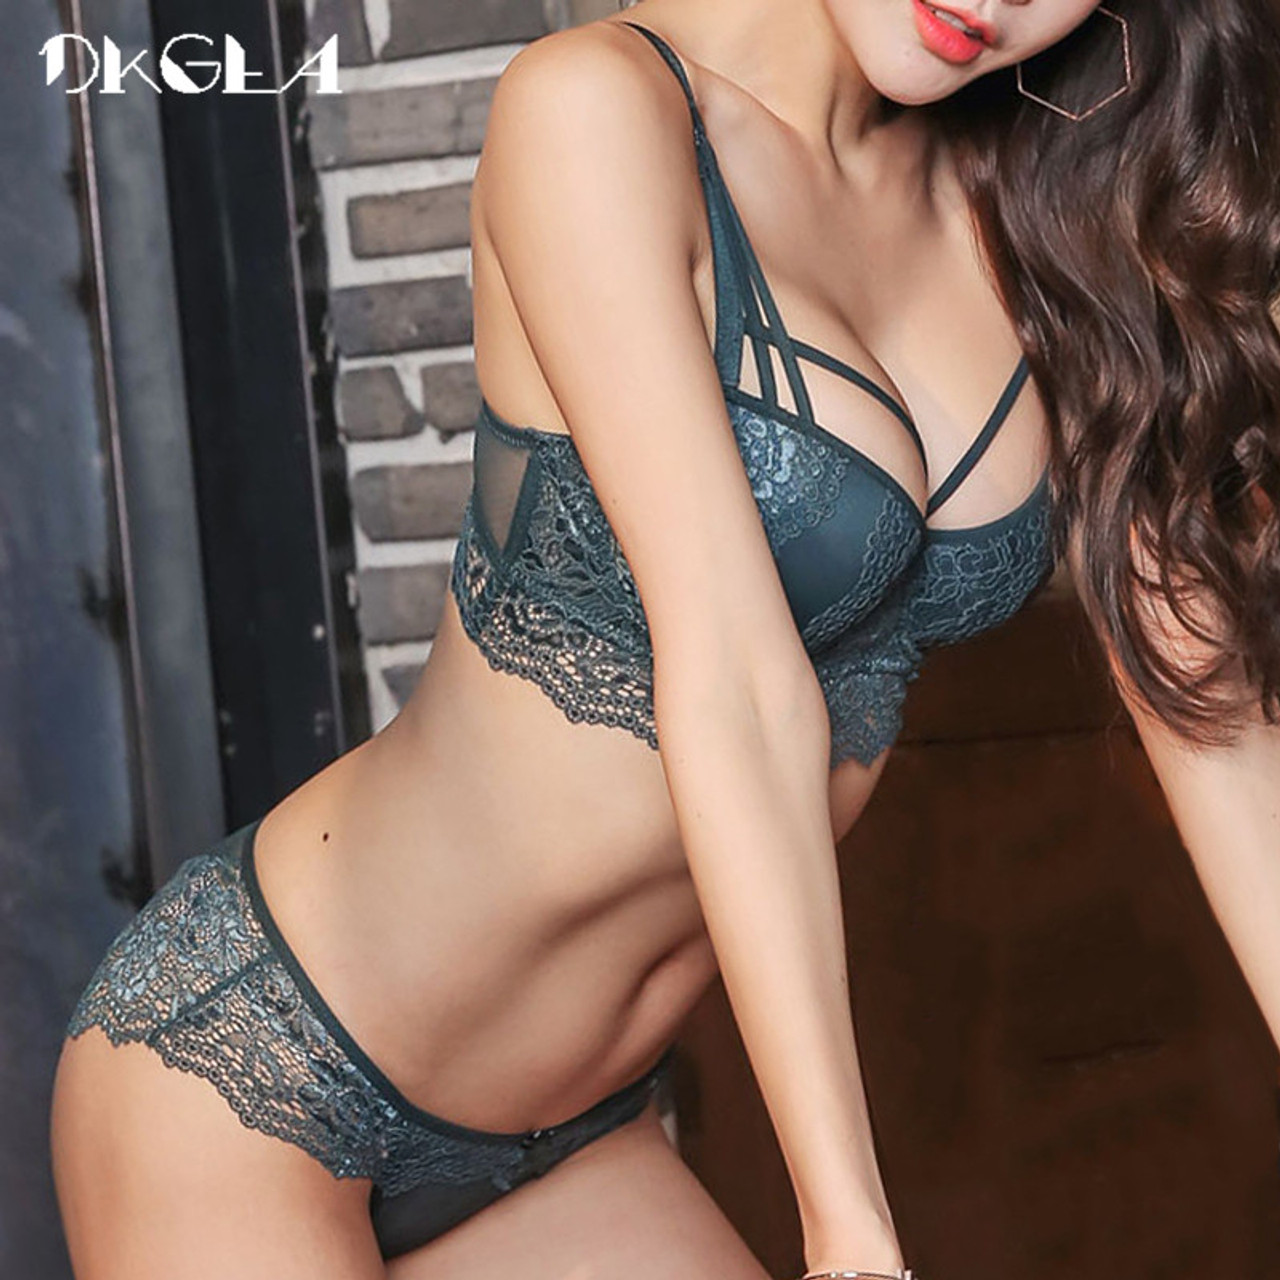 c3e63b9dcf New Top Sexy Underwear Set Cotton Push-up Bra and Panty Sets 3 4 Cup ...